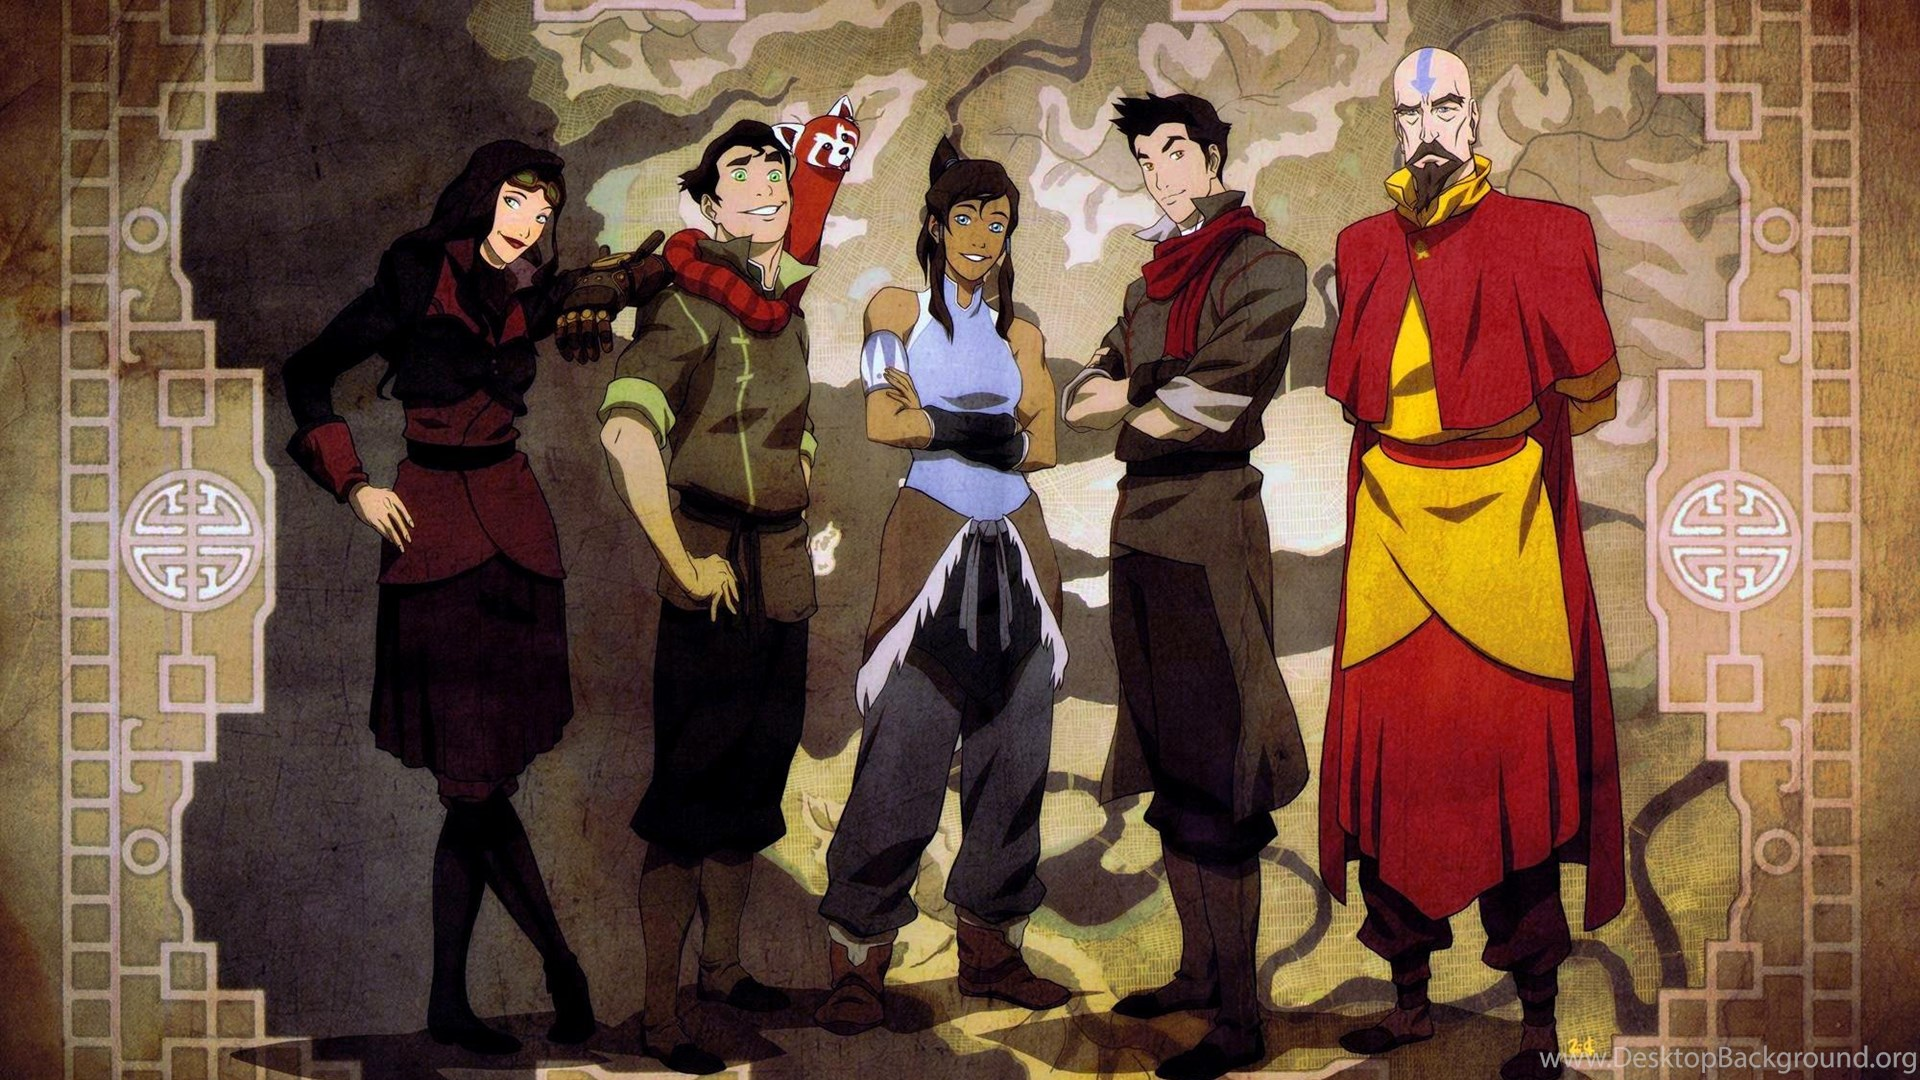 40 Avatar The Last Airbender Wallpapers For Download Desktop Background